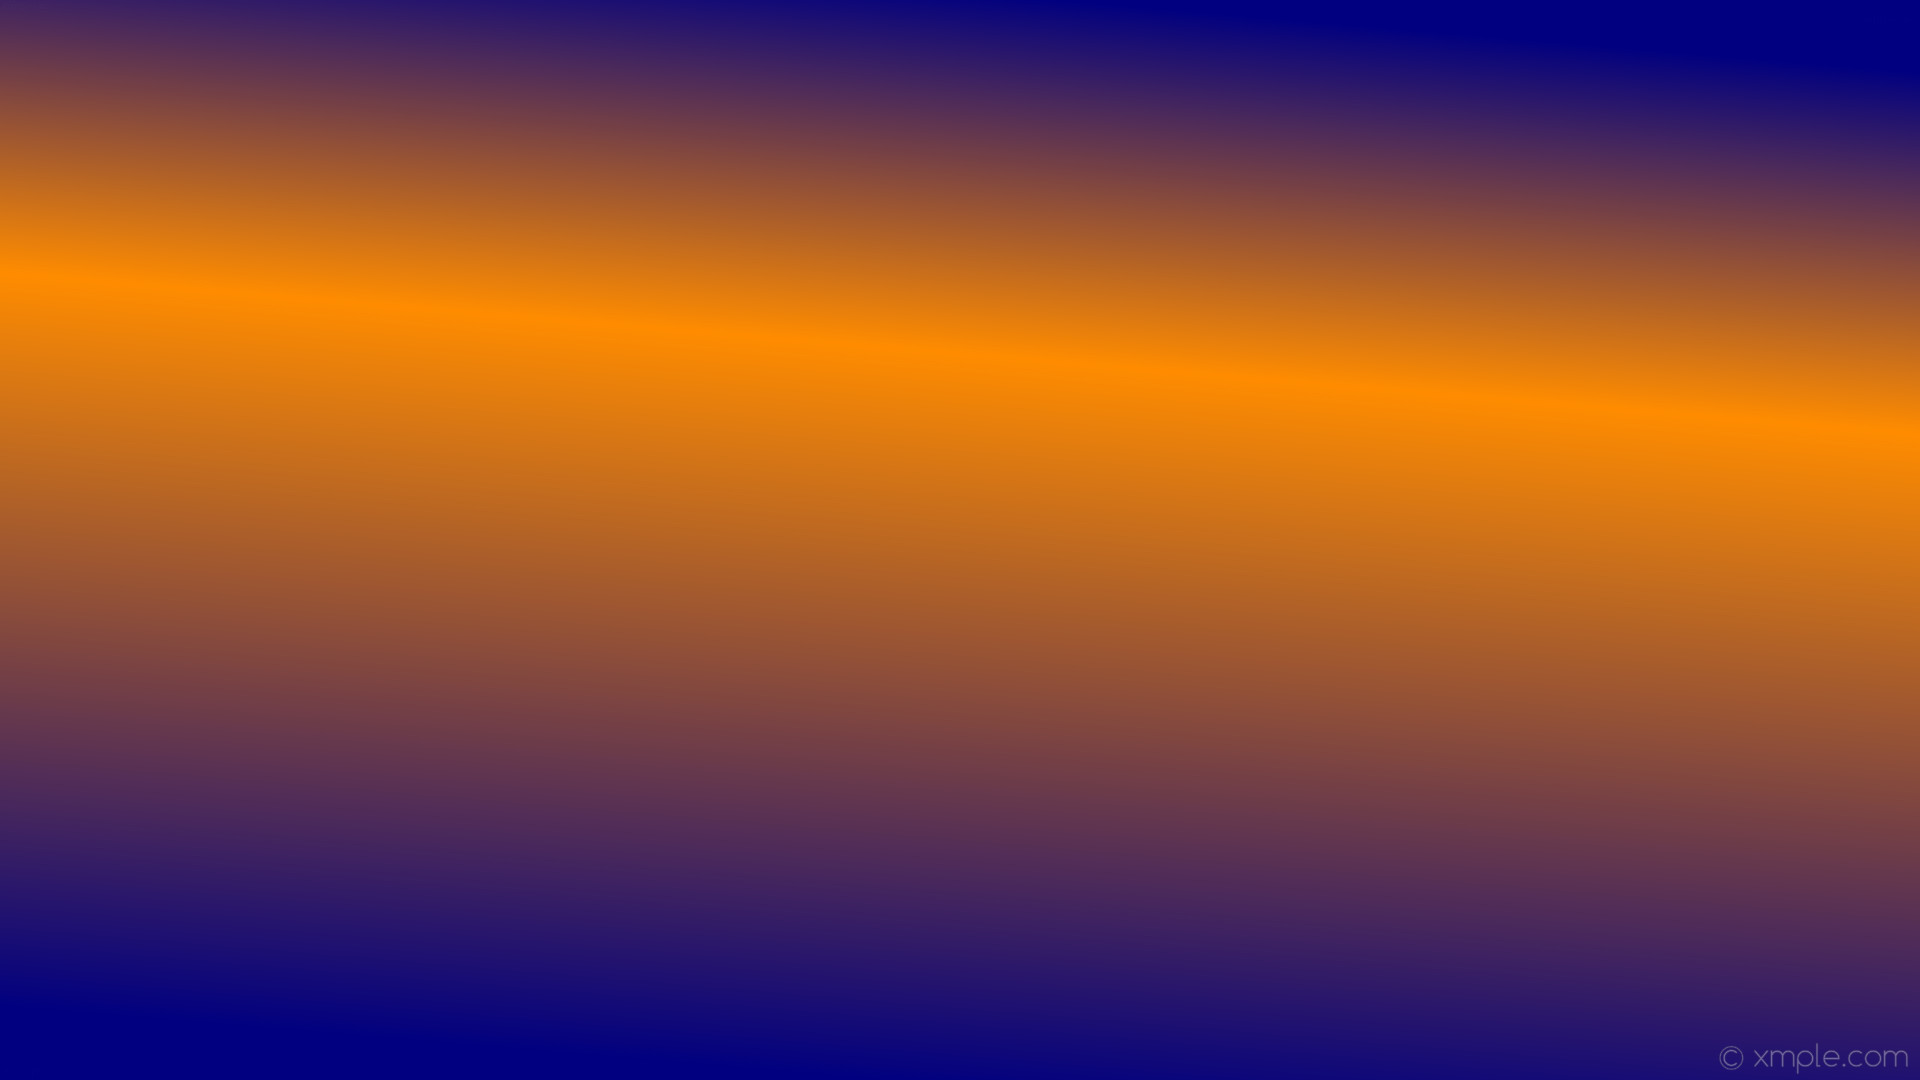 Blue and orange wallpaper 77 images 1920x1080 wallpaper linear orange blue gradient highlight navy dark orange 000080 ff8c00 75 altavistaventures Images